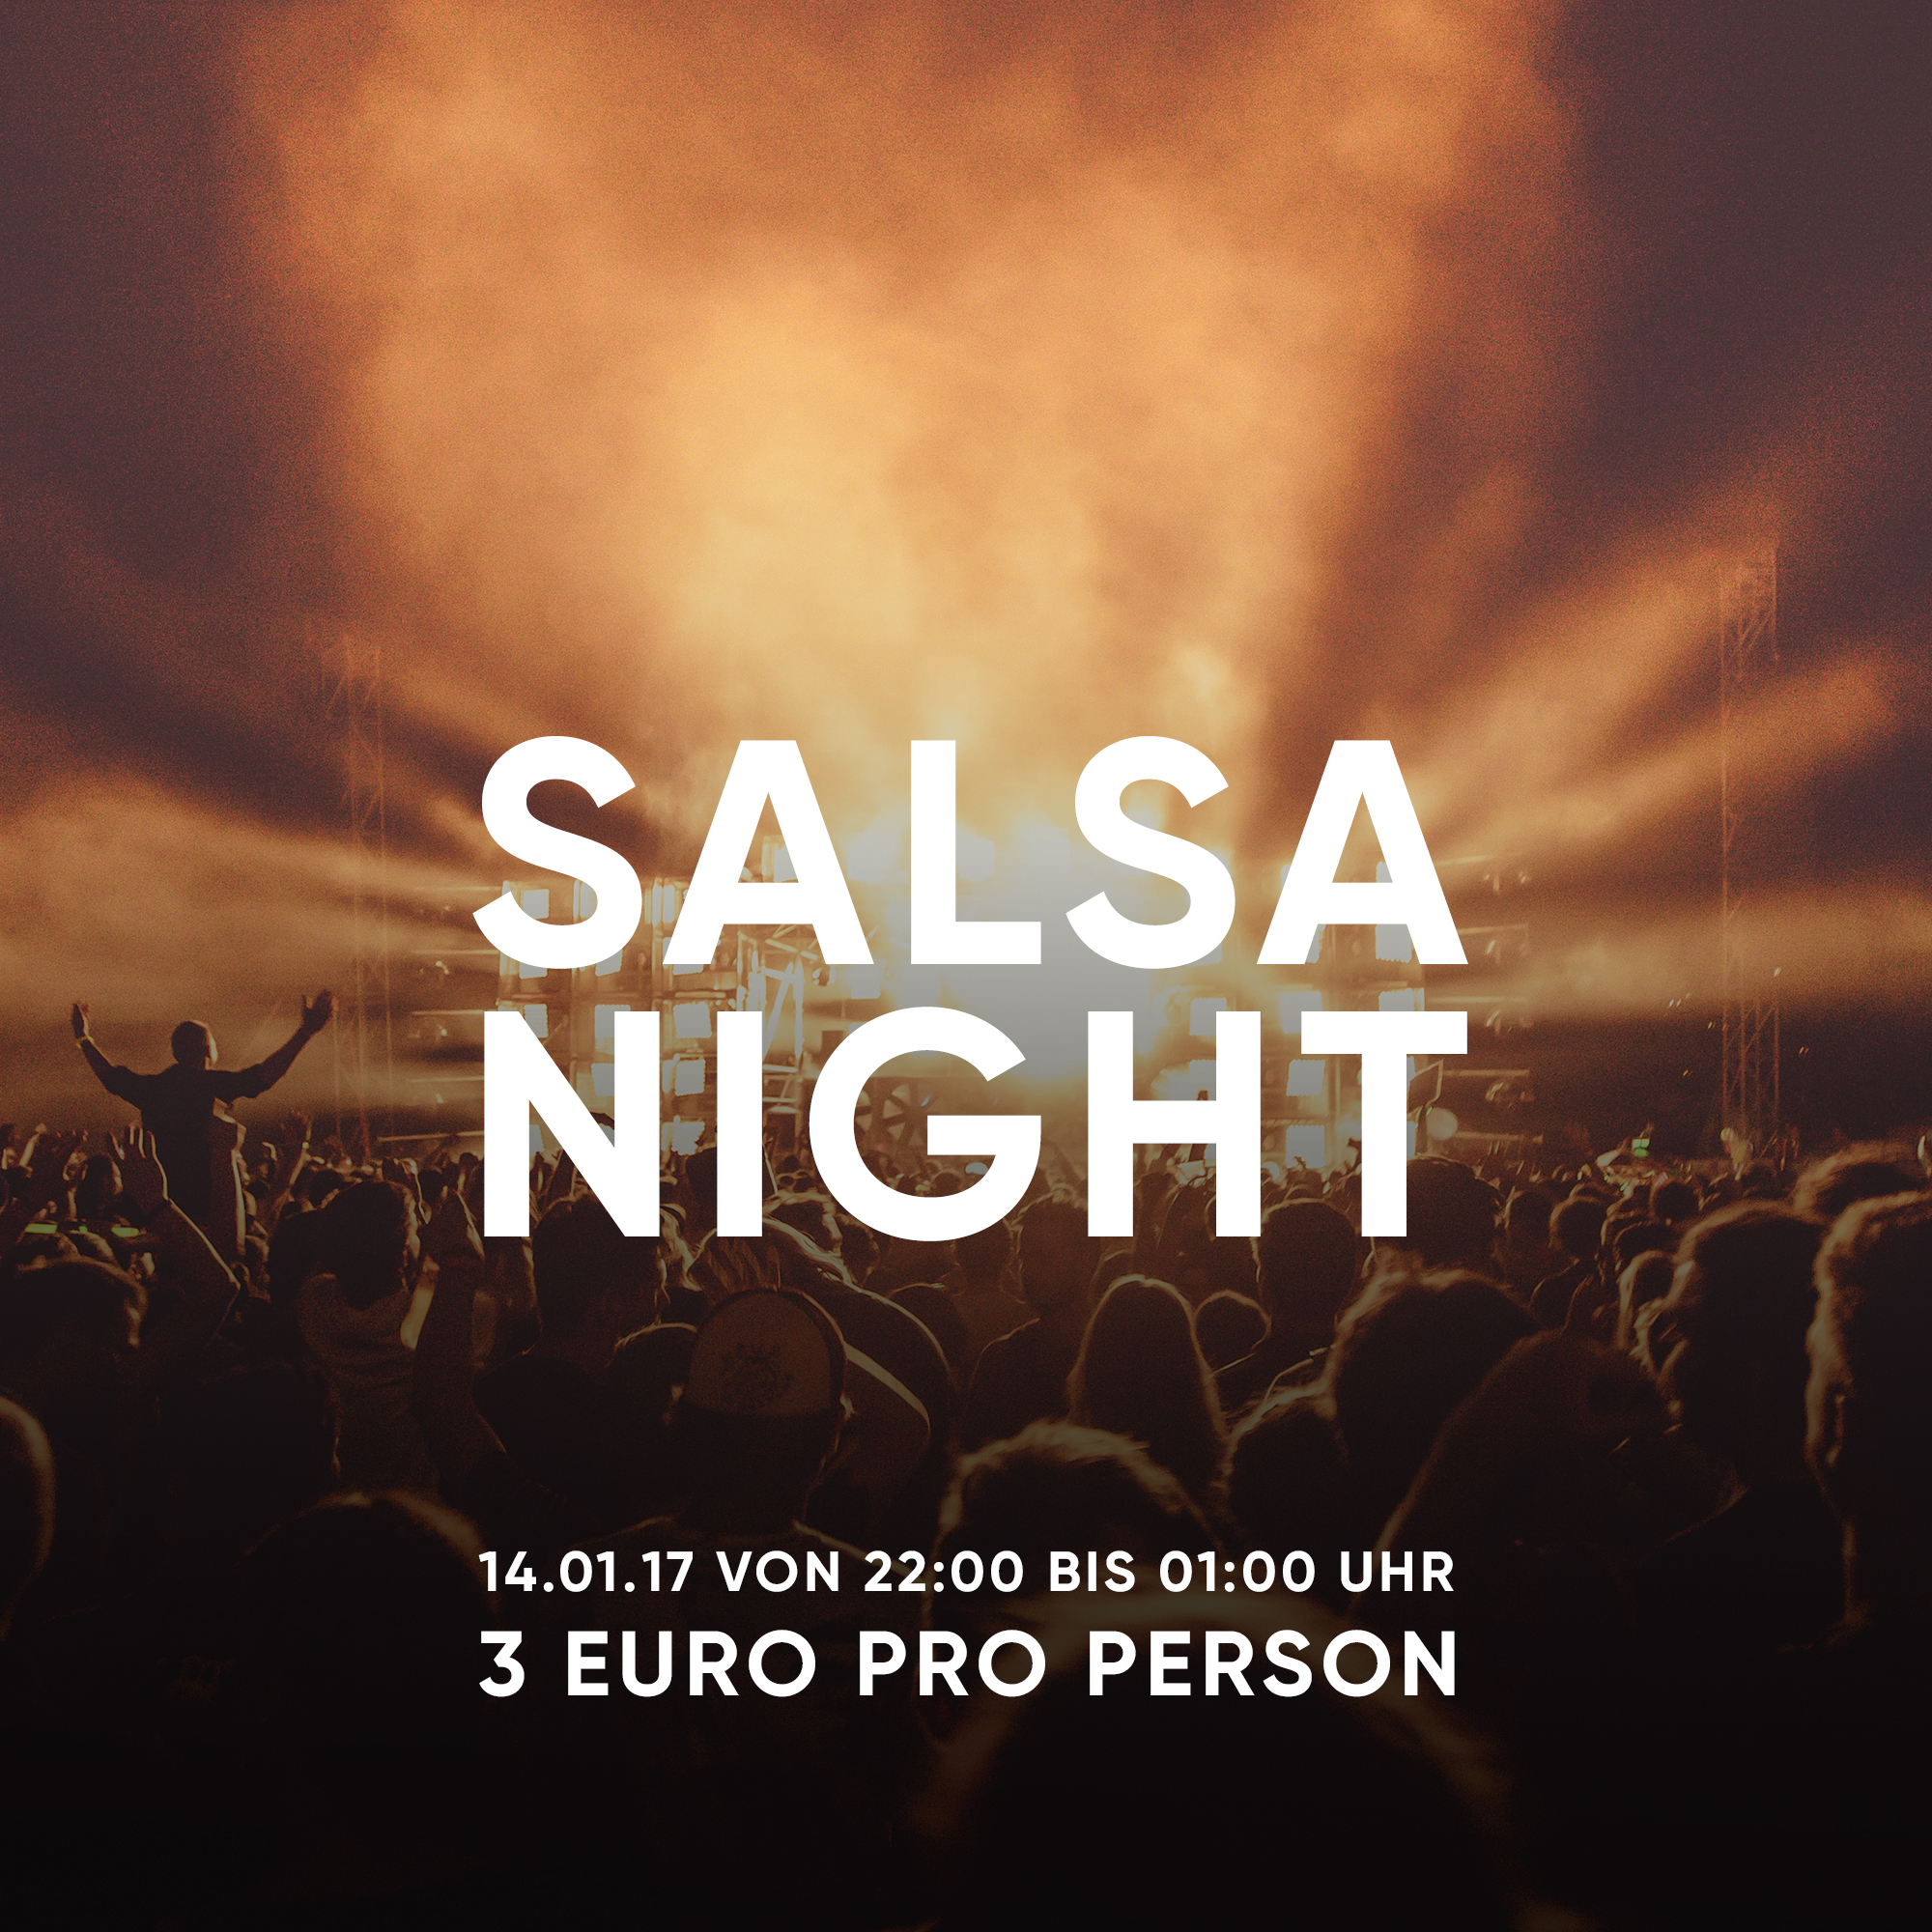 SALSA NIGHT in Würzburg